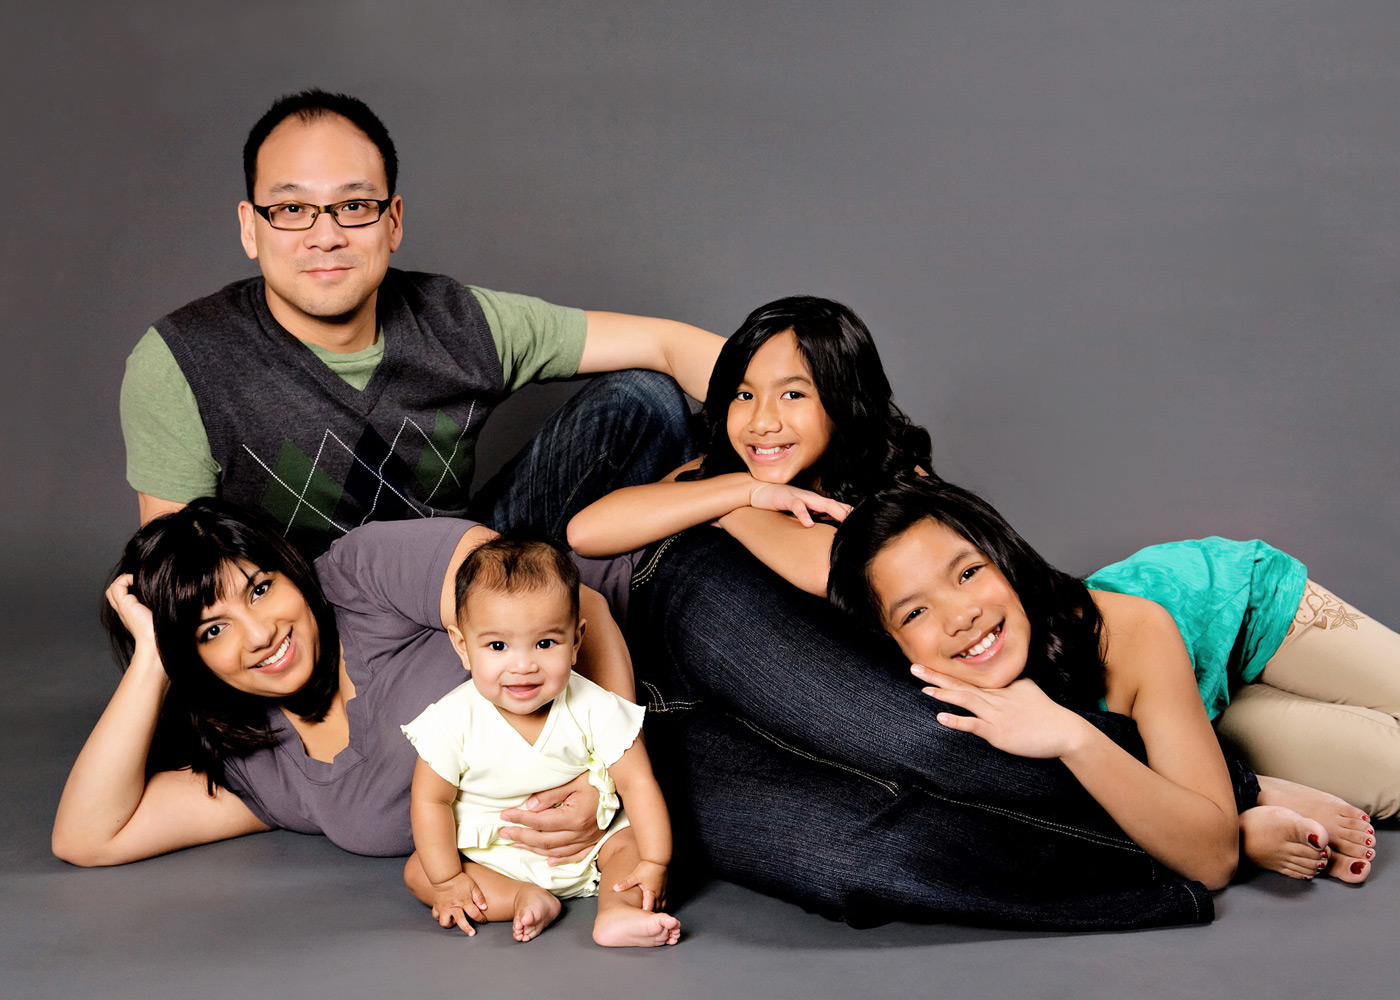 Family photographer Richmond Hill